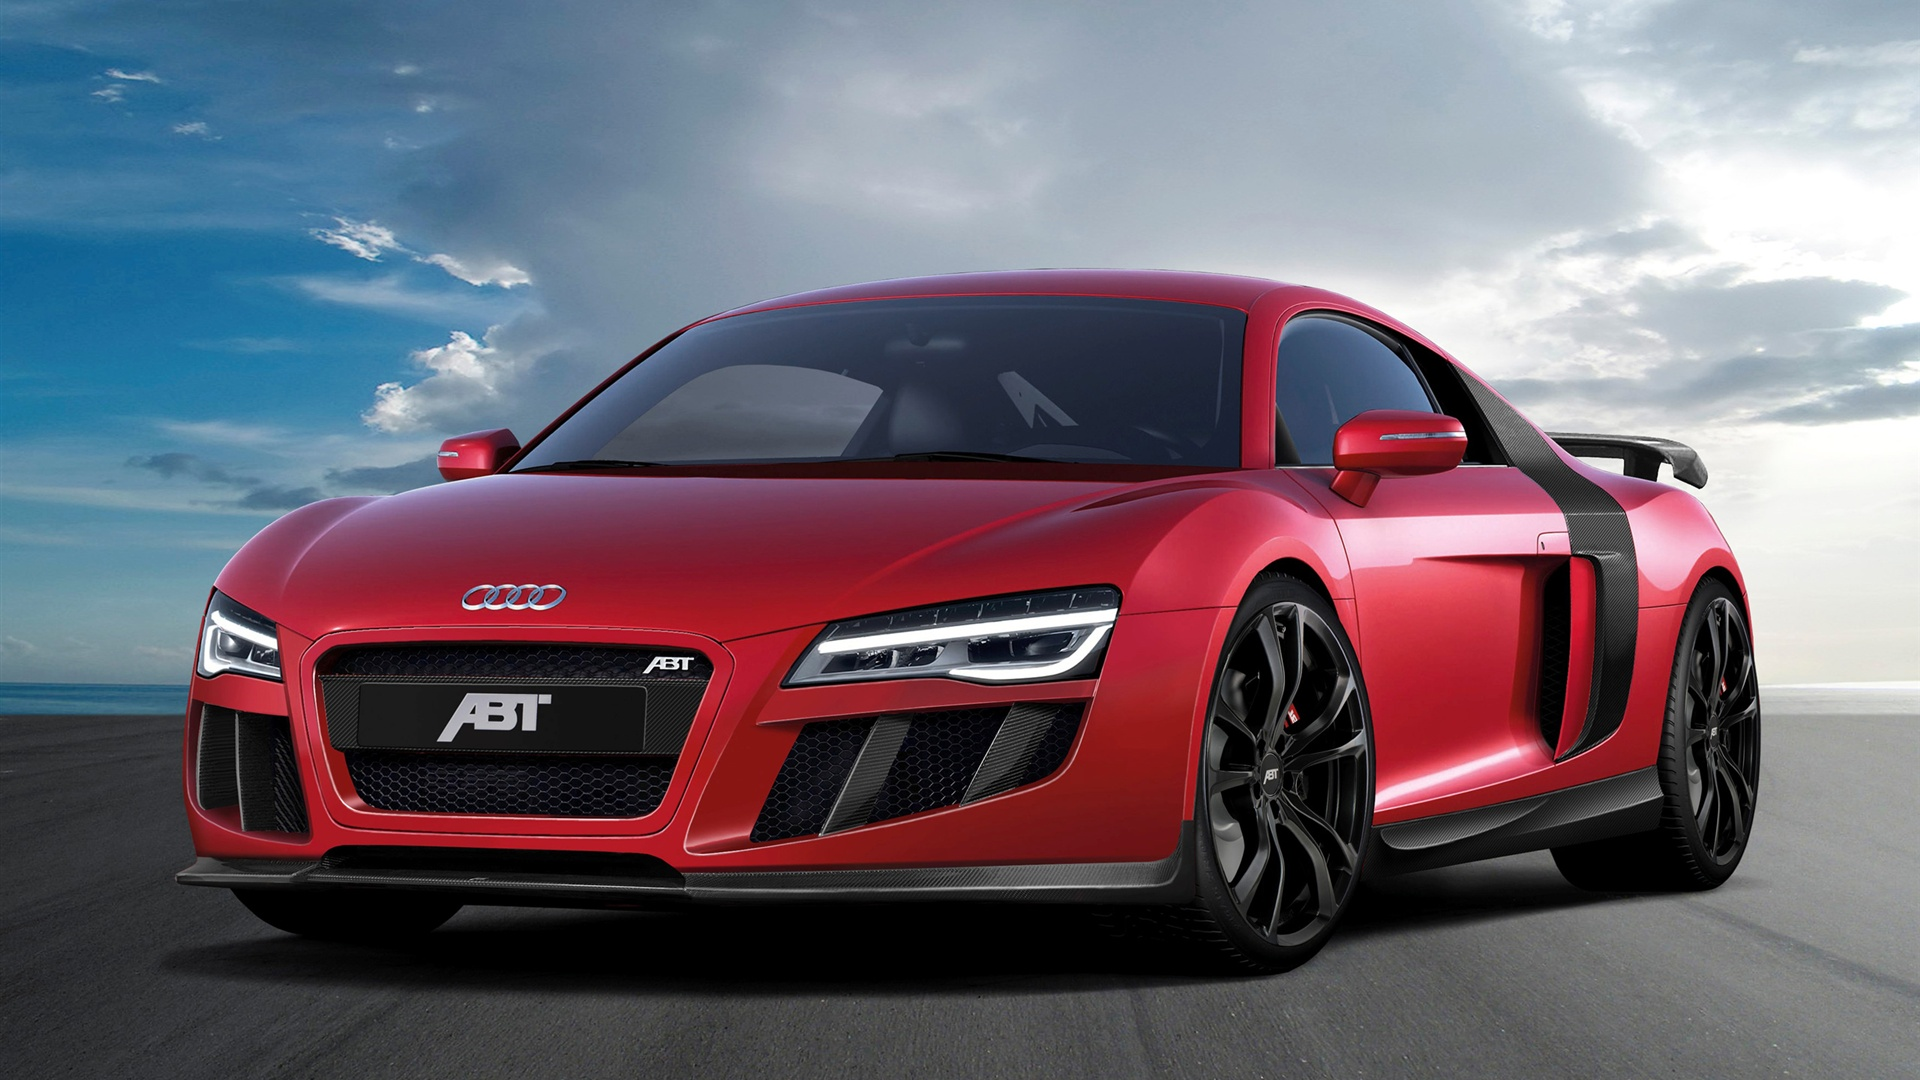 Wallpaper 2013 Abt Audi R8 V10 Red Supercar 2560x1600 HD Picture Image